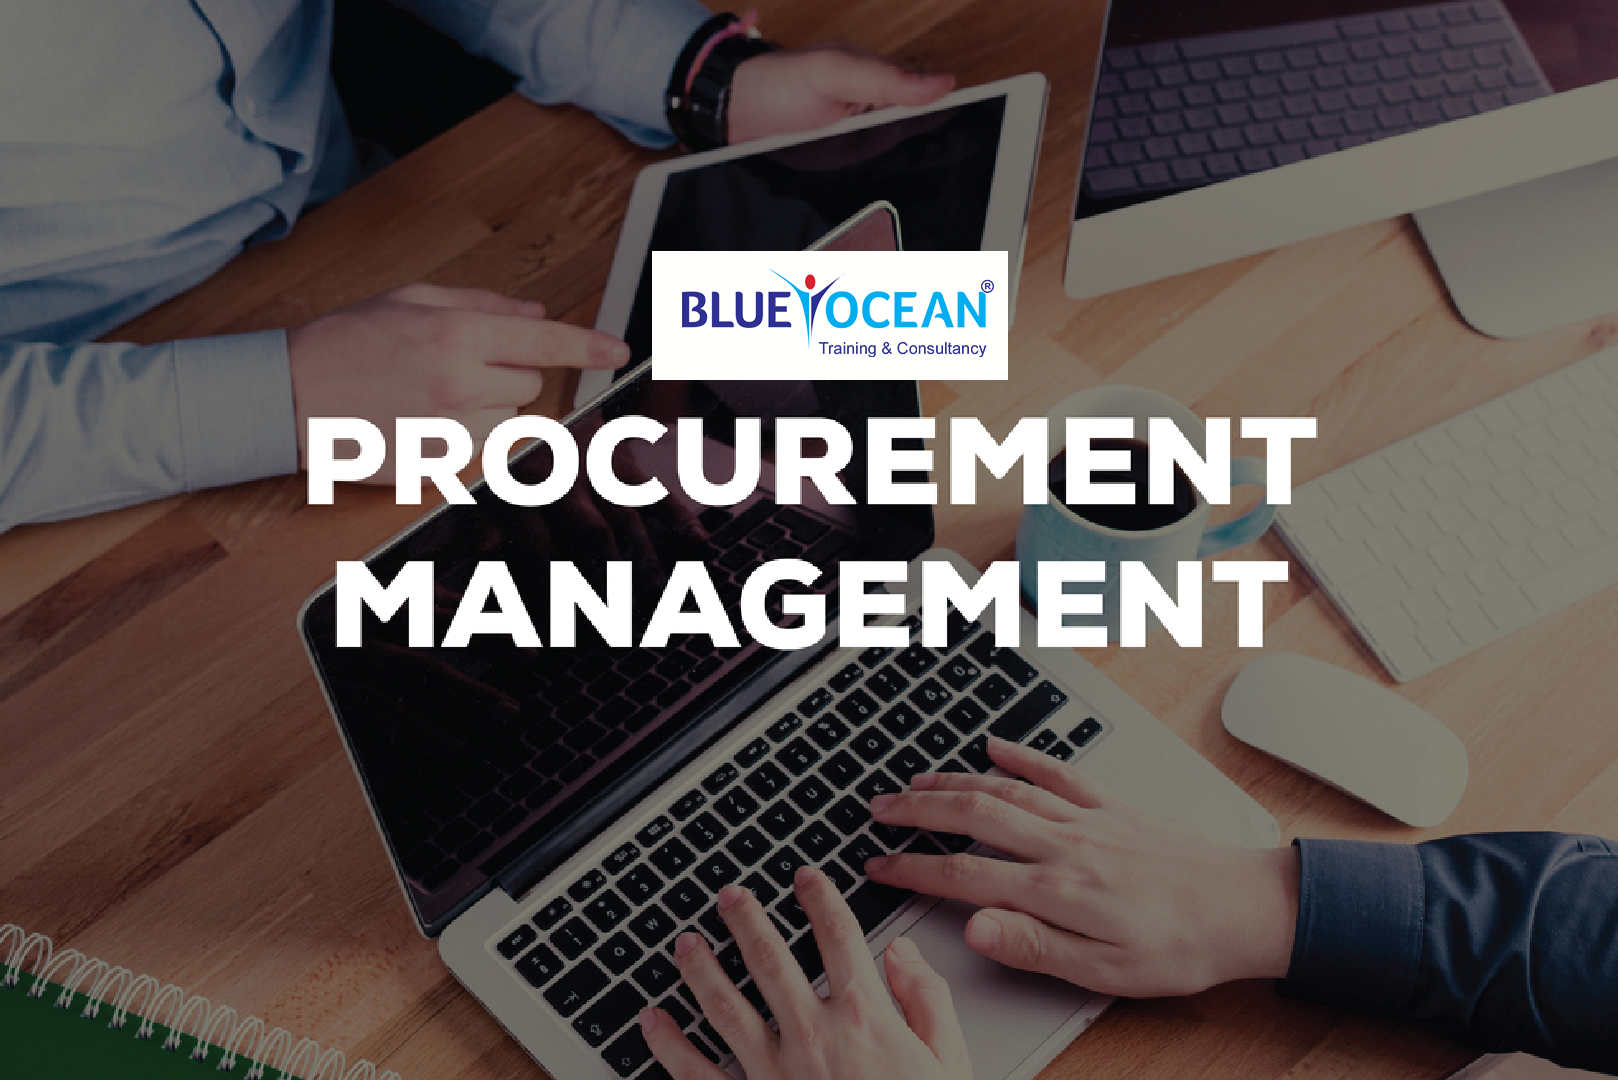 Best Practices in Procurement: The Key to Reap Profit in Business